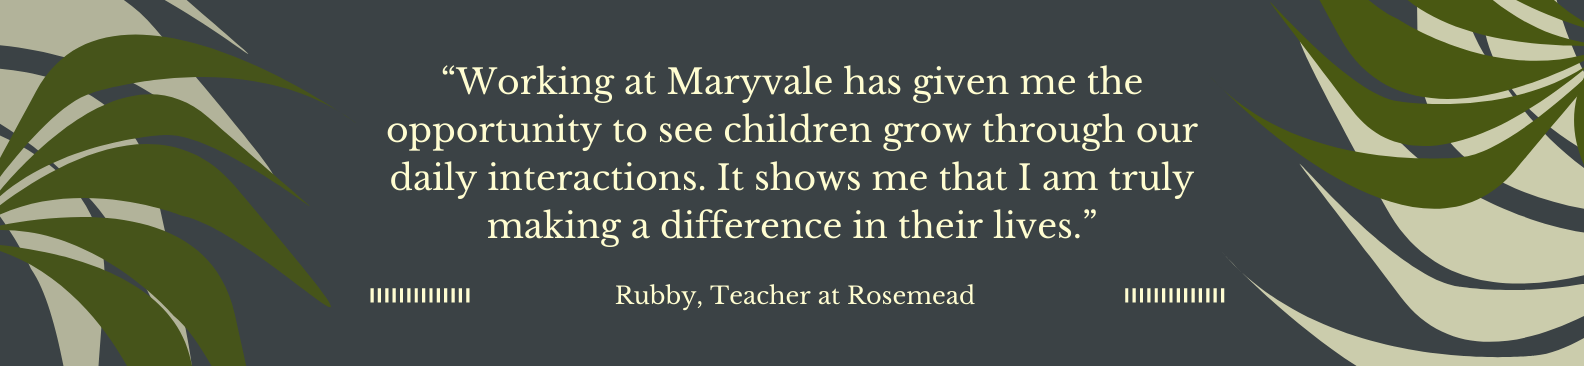 Maryvale Quote Graphic[6]